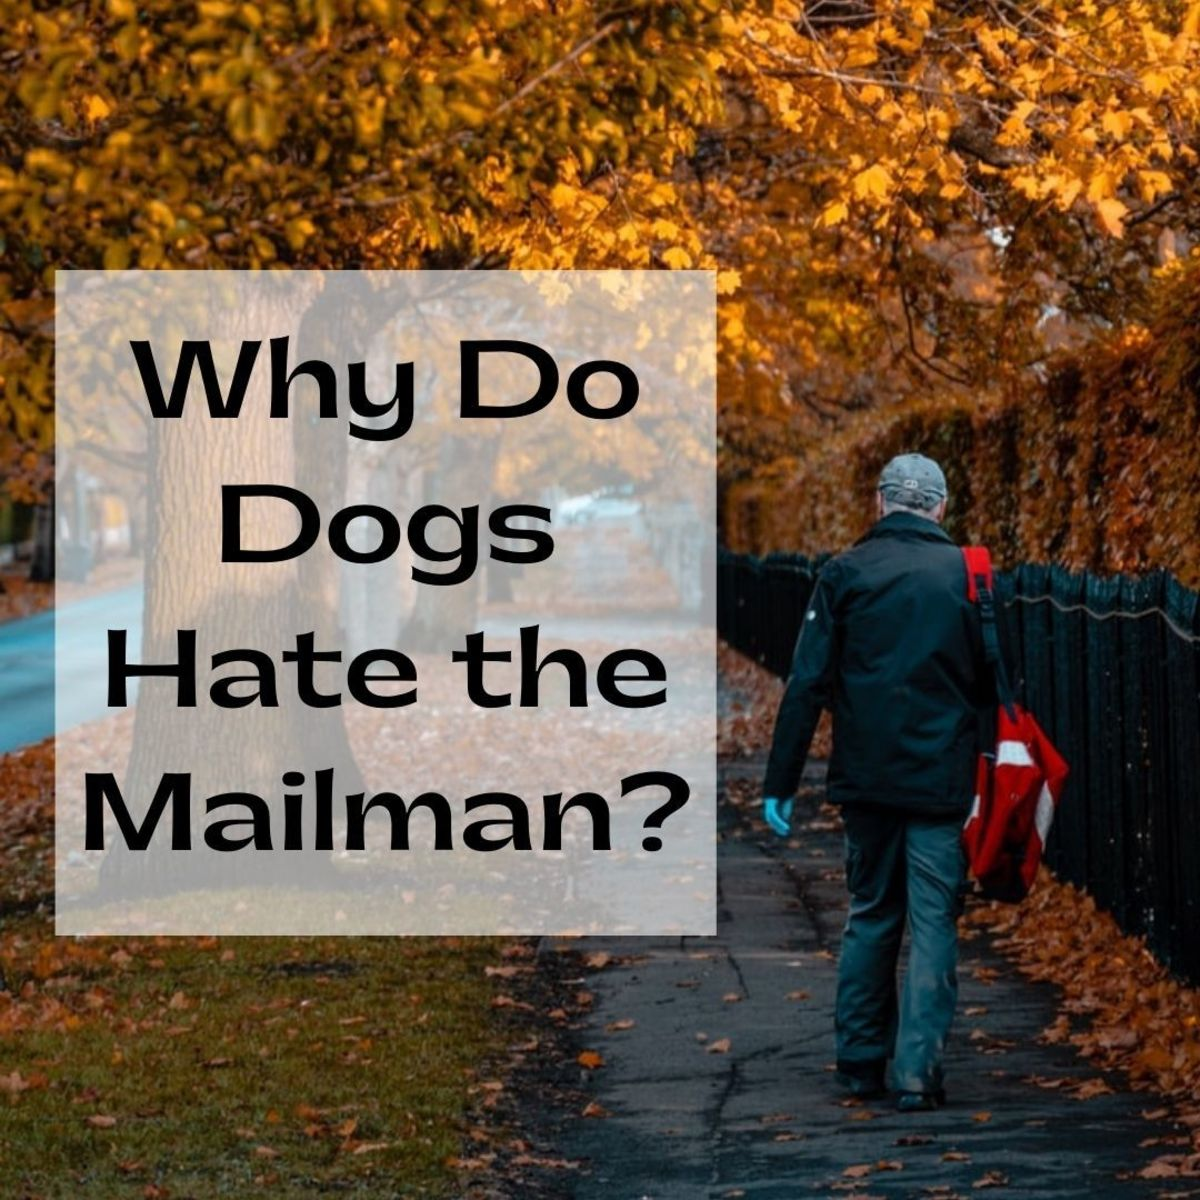 Why do so many dogs (even the seemingly friendly breeds) seem to hate the mailman?